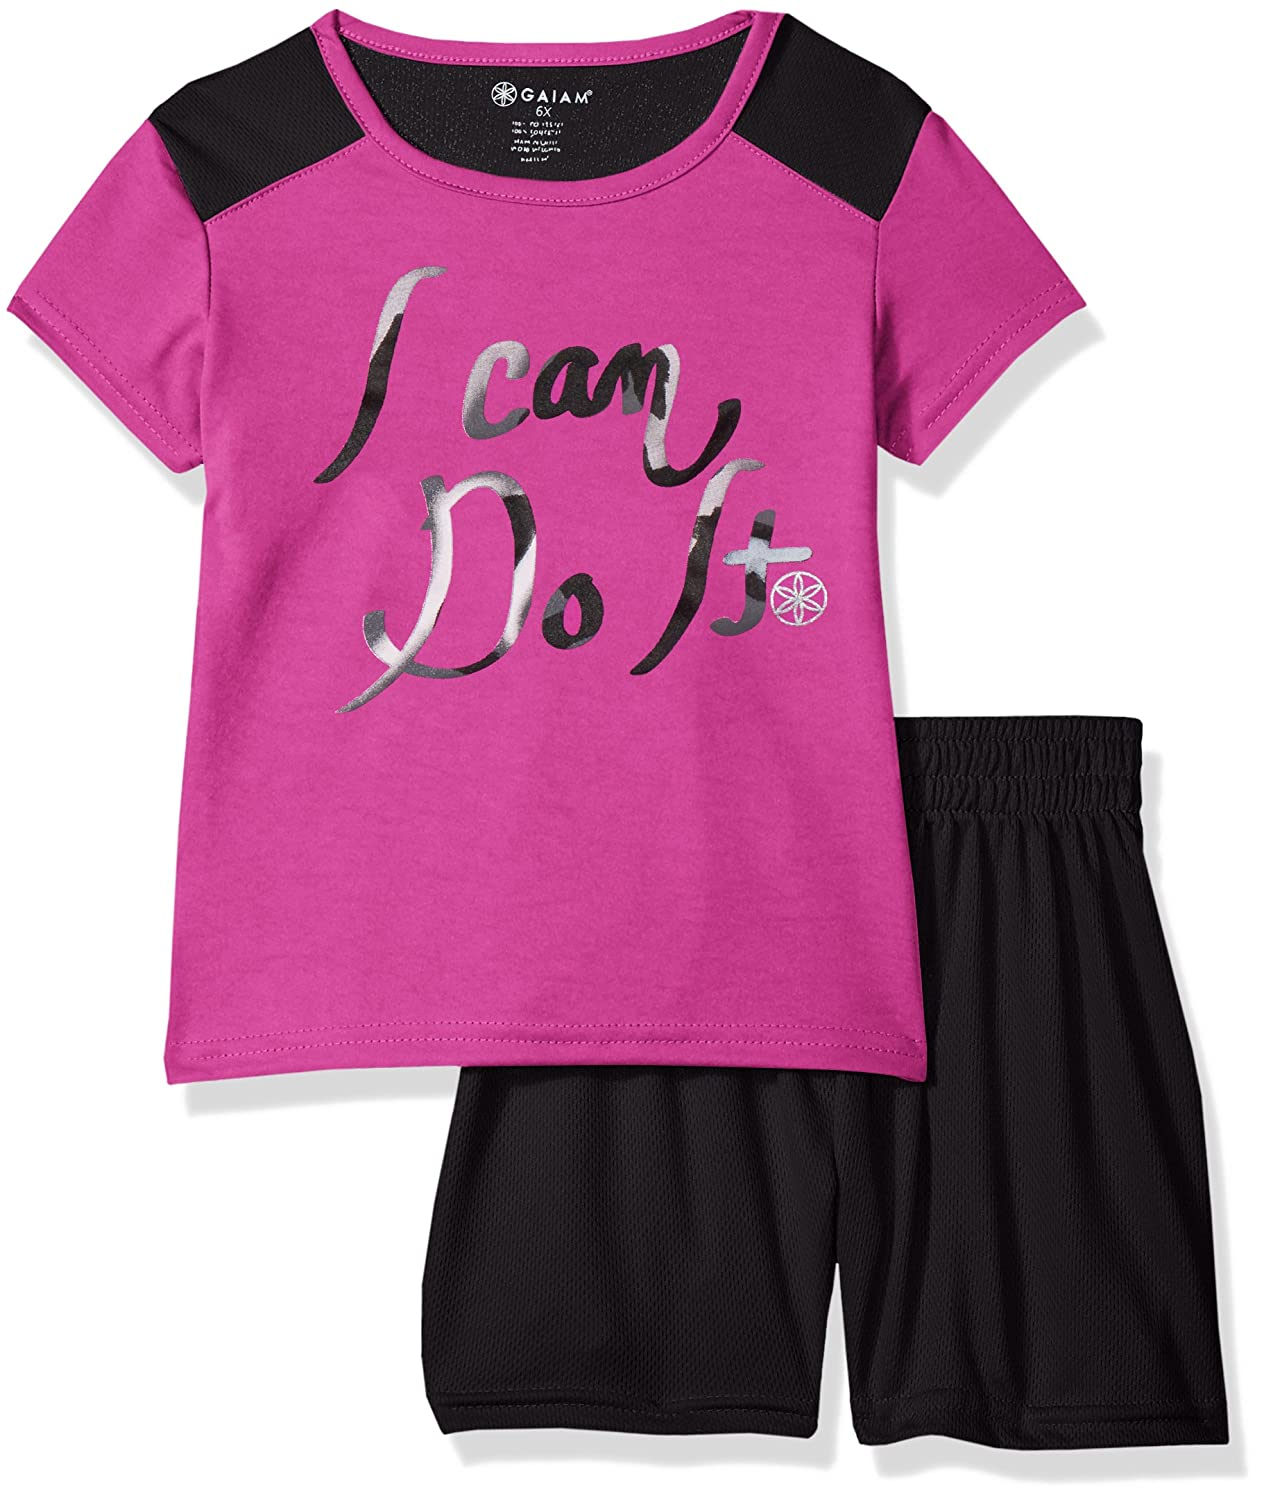 Gaiam Girls' I Can Sleeve Top and Mesh Short Set